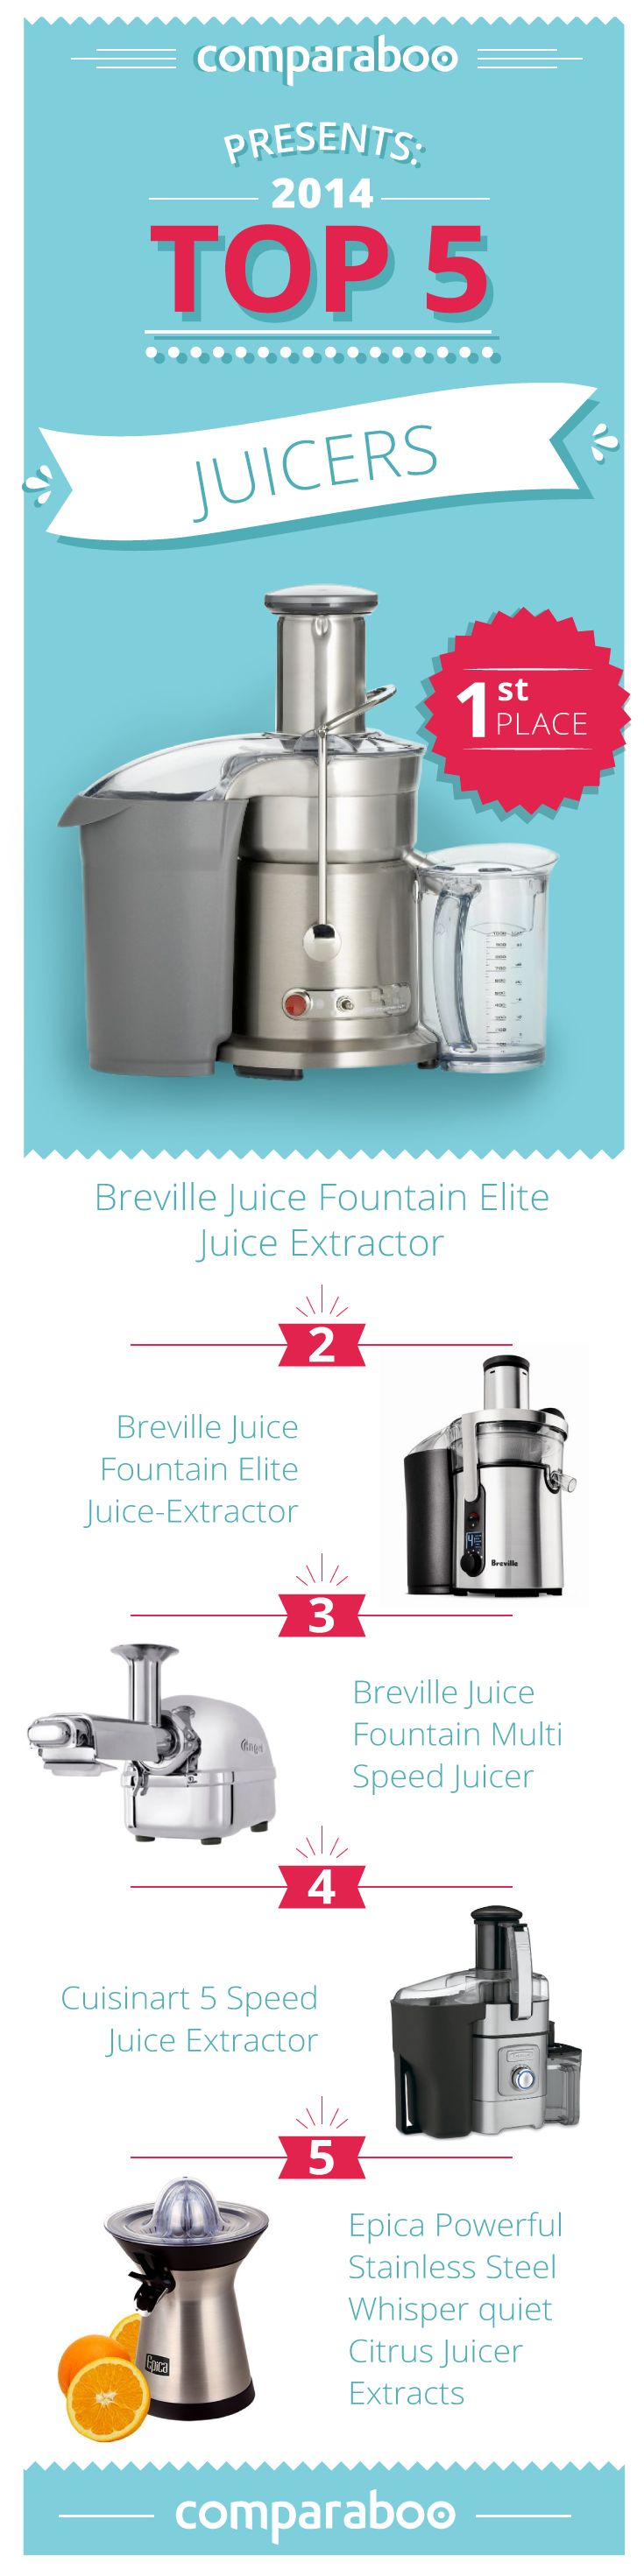 As more and more people start to realize the fantastic benefits of delicious juices, more and more types of juicers come onto the market. With so many to choose from, comparing and finding the right one for you, can be like finding a needle in a hay stack. At Comparaboo, we are constantly scanning and analyzing to be able to give you the top ranked juicers. http://www.comparaboo.com/juicers